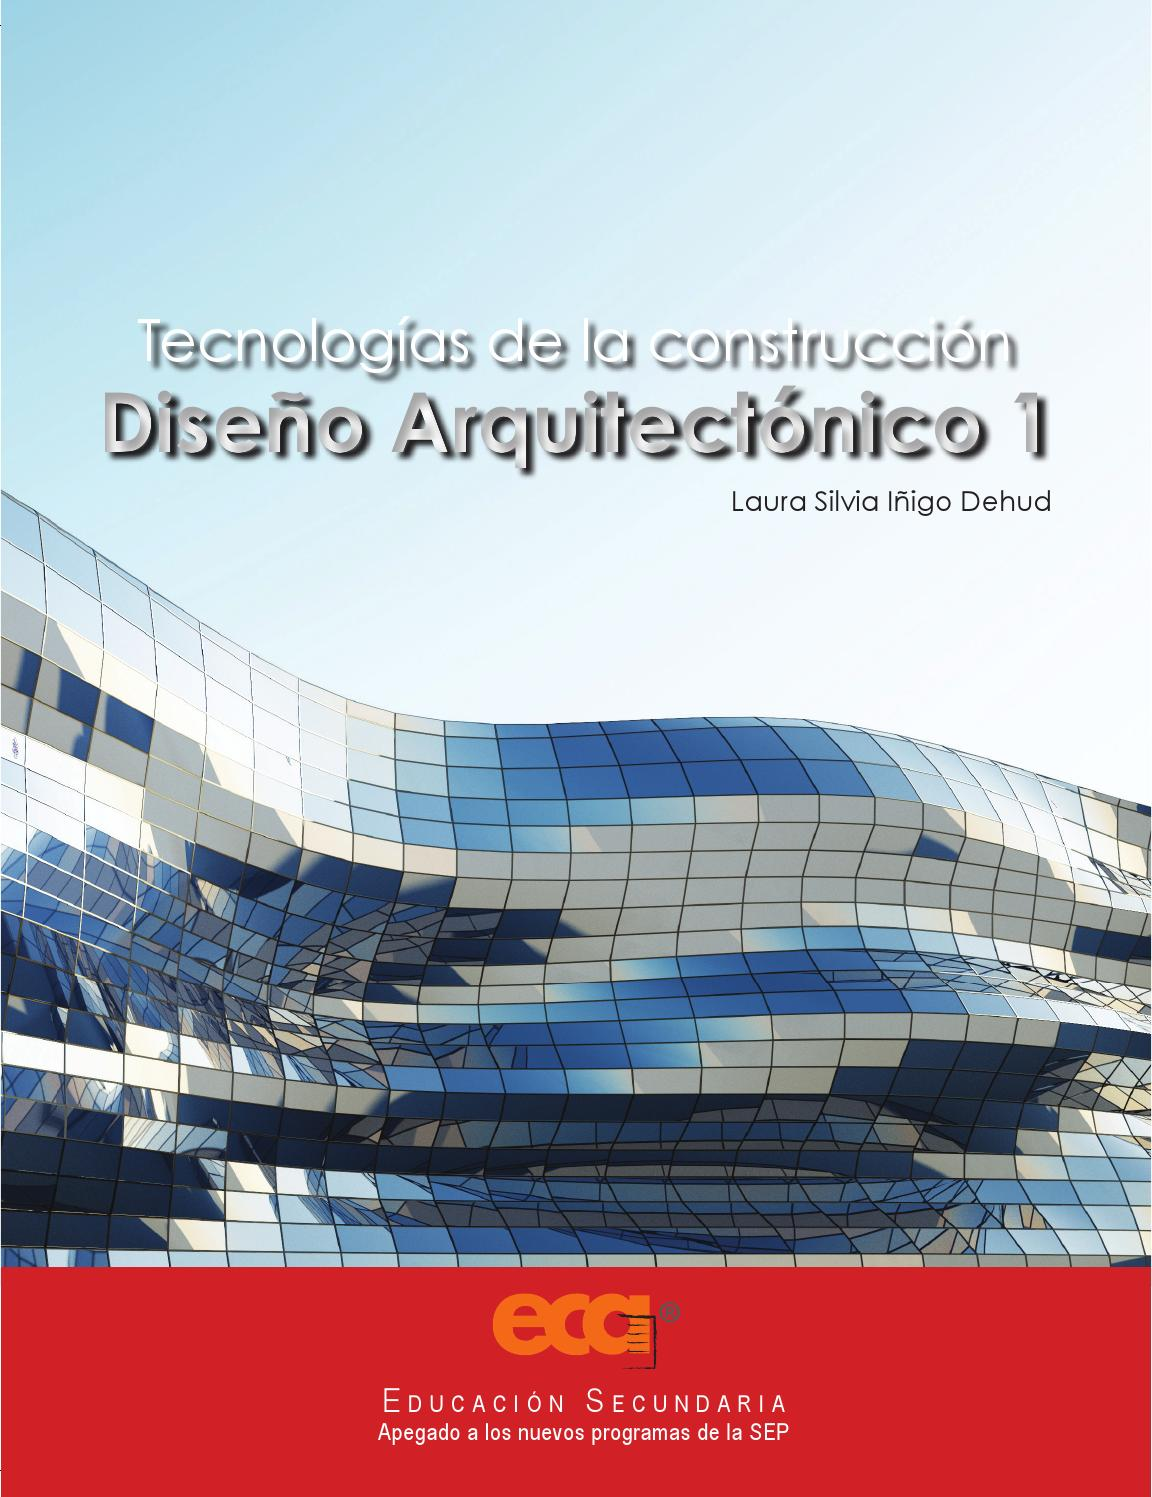 Dise o arquitect nico 1 by ediciones eca issuu for Paginas de construccion y arquitectura